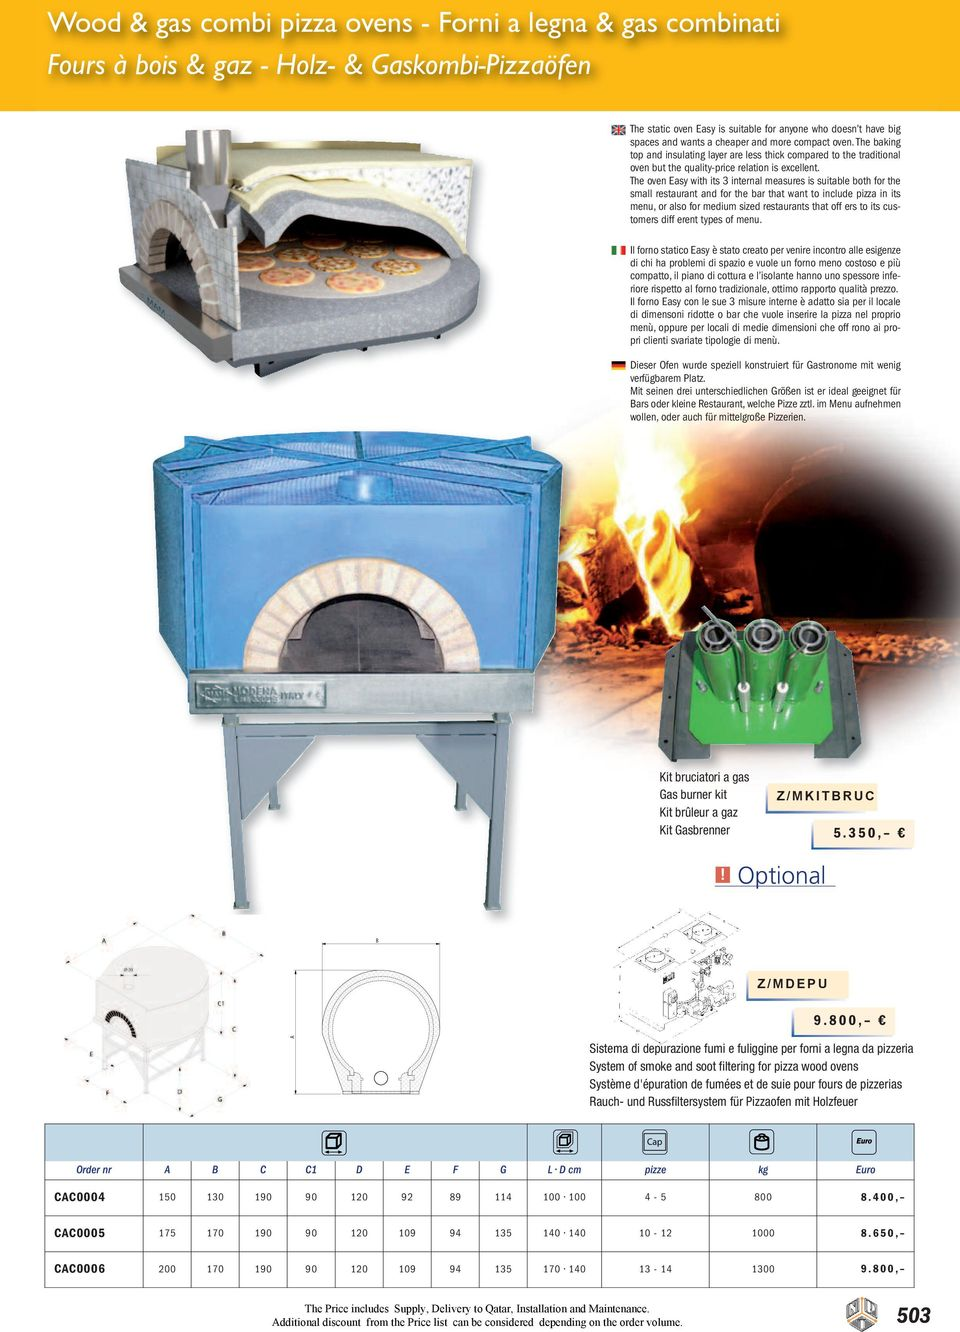 The oven Easy with its 3 internal measures is suitable both for the small restaurant and for the bar that want to include pizza in its menu, or also for medium sized restaurants that off ers to its